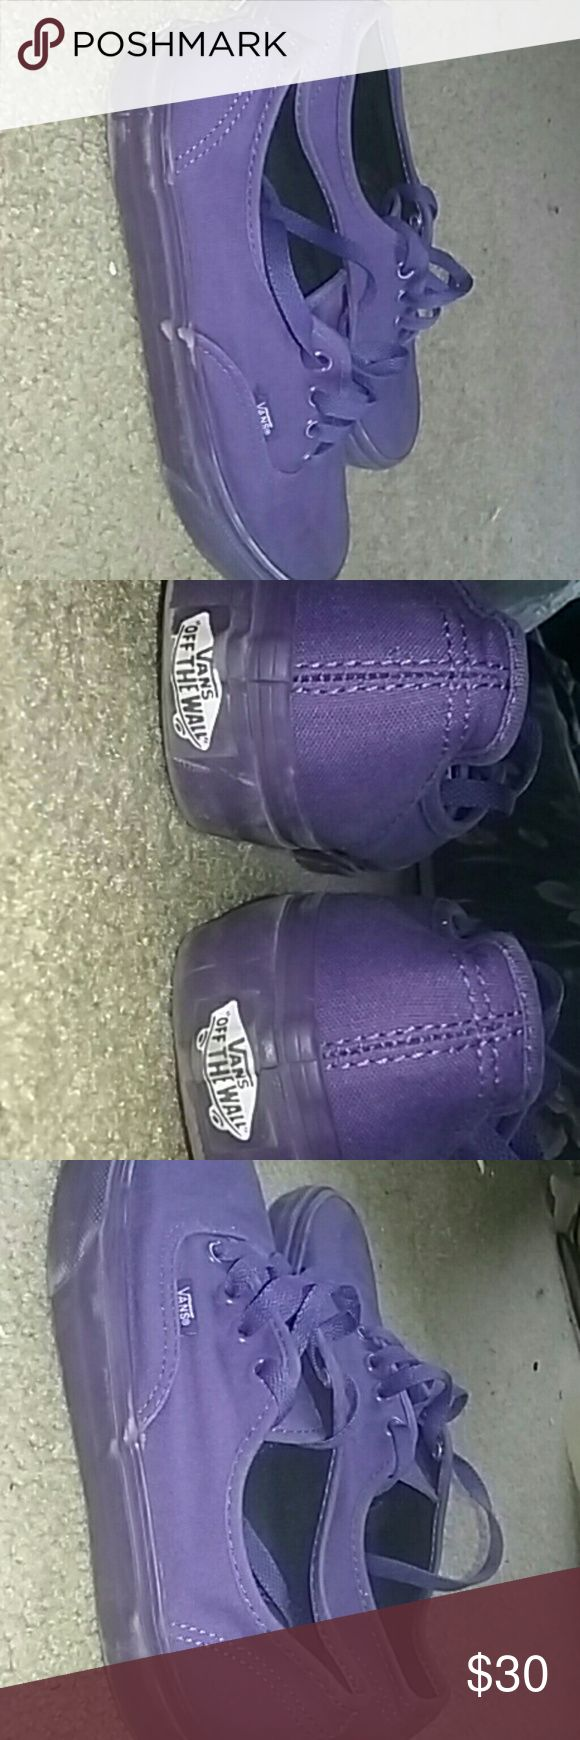 Purple vans Purple vans size 5.5 men's 7 in women's. Trying to get rid of stuff I don't wear. Feel free to ask any questions! (please comment if interested before buying) Vans Shoes